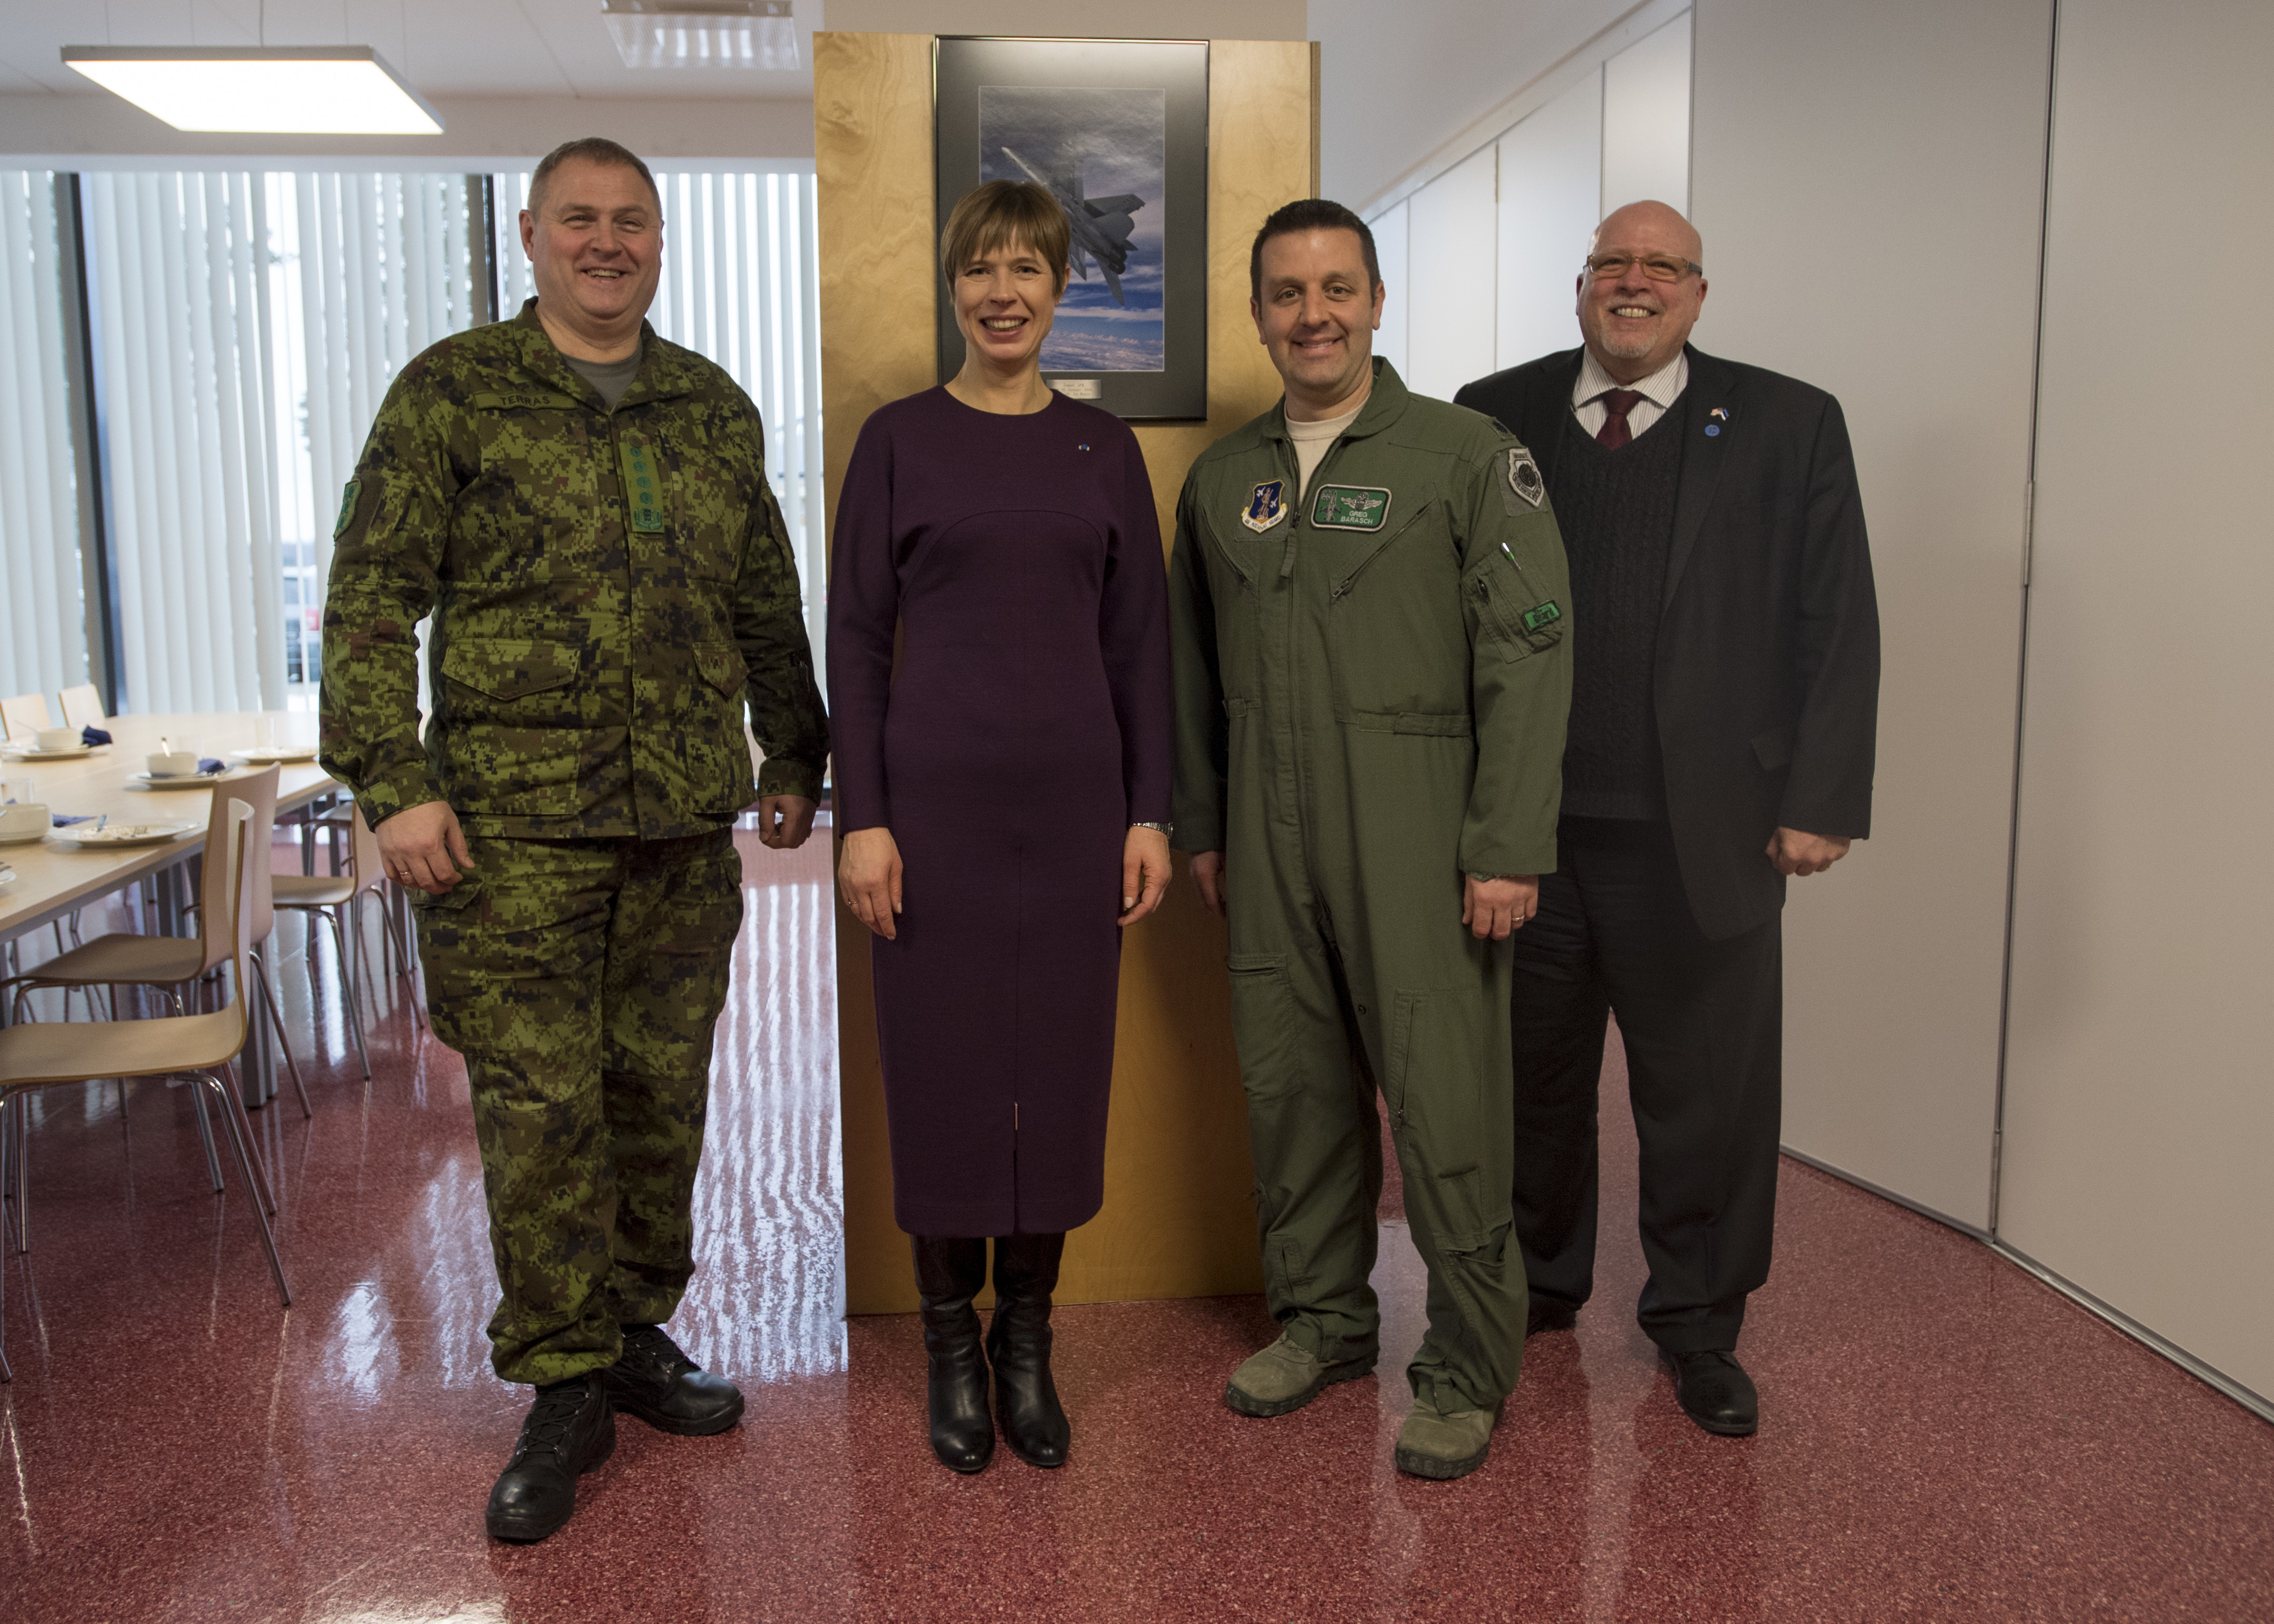 General Riho Terras, commander of the Estonian Defence Forces, H.E. Mrs. Kersti Kaljulaid, President of the Republic of Estonia, Lt. Col. Greg Barasch, 112th Expeditionary Fighter Squadron commander, and Ambassador James D. Melville Jr., U.S. Ambassador to Estonia, pose Jan. 10, 2018 after a luncheon at Amari Air Base, Estonia. They discussed the Ohio Air National Guard's participation in the theater security package, and the strong U.S.-Estonian alliance. (DoD photo by MC3 Cody Hendrix)